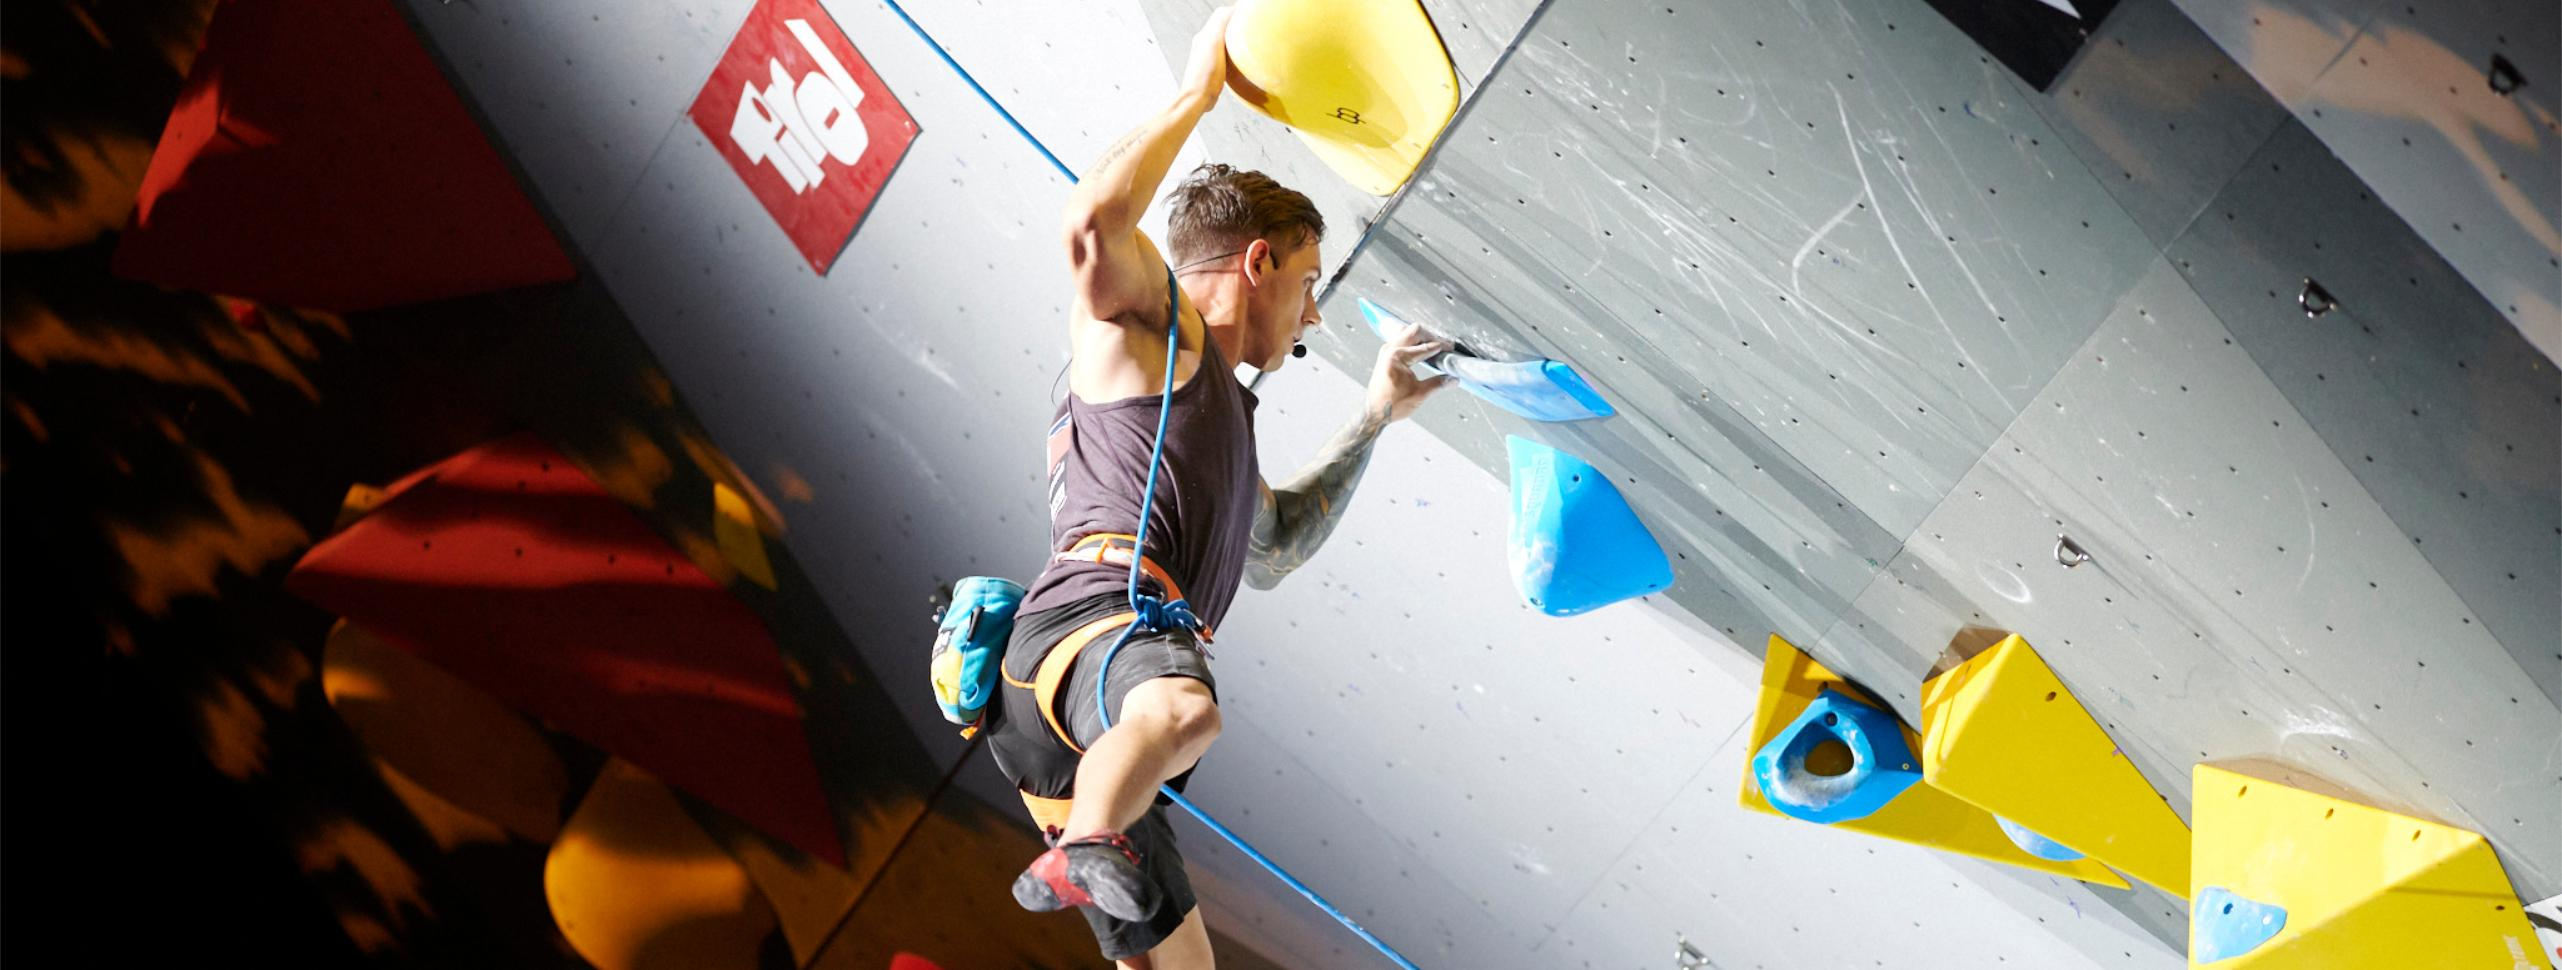 THIRD PARACLIMBING WORLD CUP OF THE SEASON TO TAKE PLACE IN LOS ANGELES